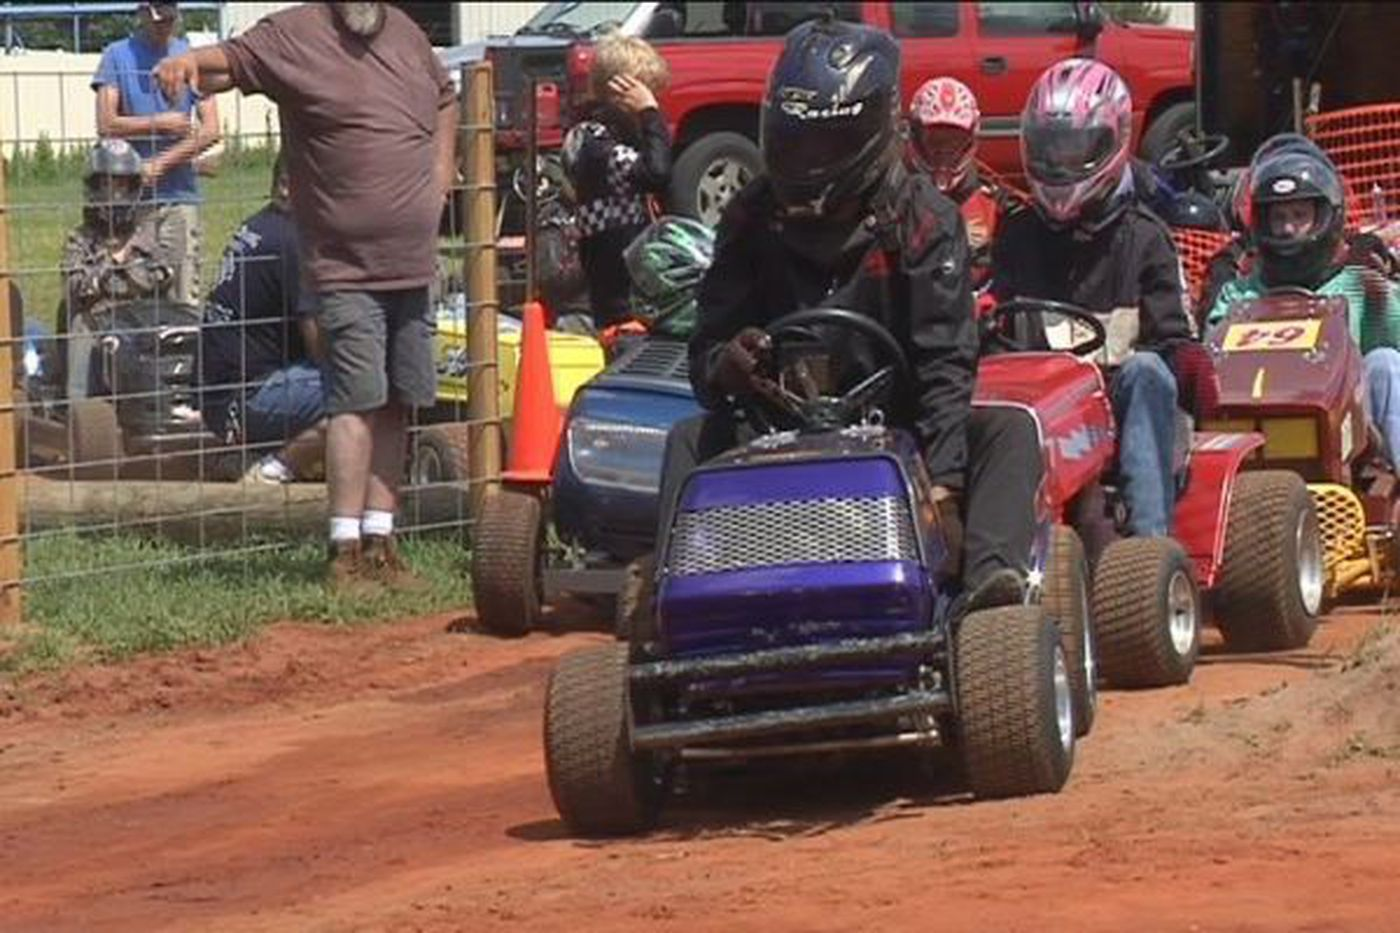 Riding lawnmowers race around Lucedale track